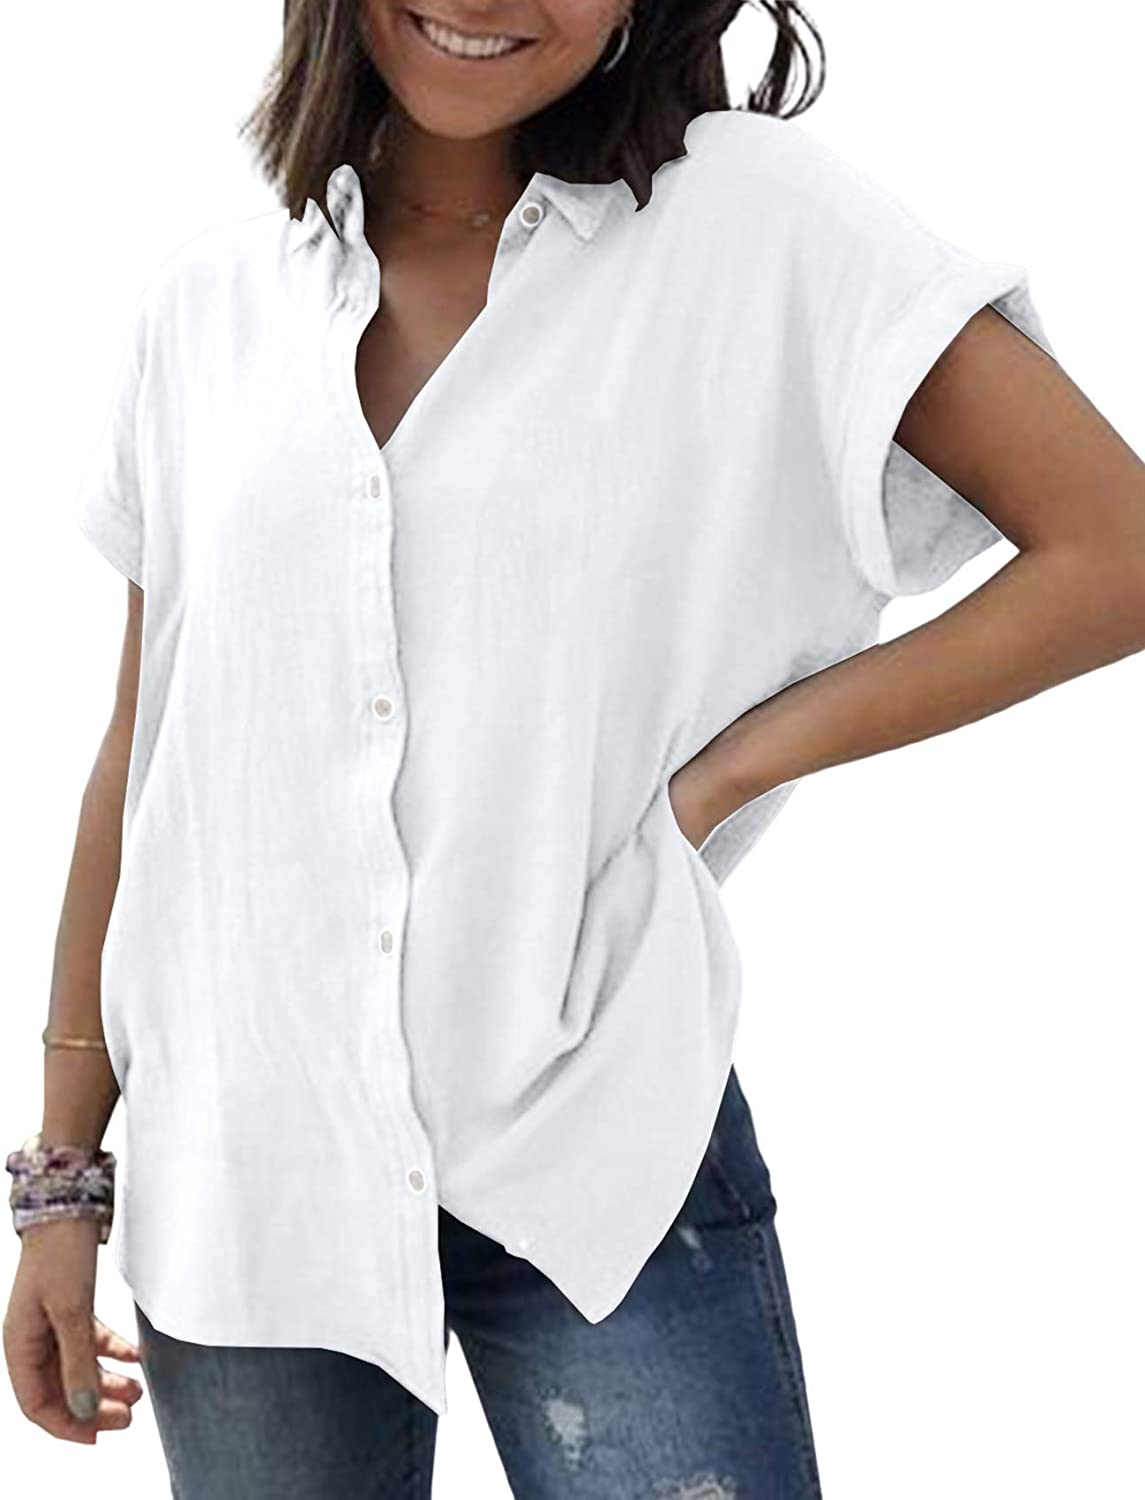 Womens Button Down V Neck Shirts Roll Up Short Sleeve Blouse Loose Fit Casual Work Plain Tops with Pockets